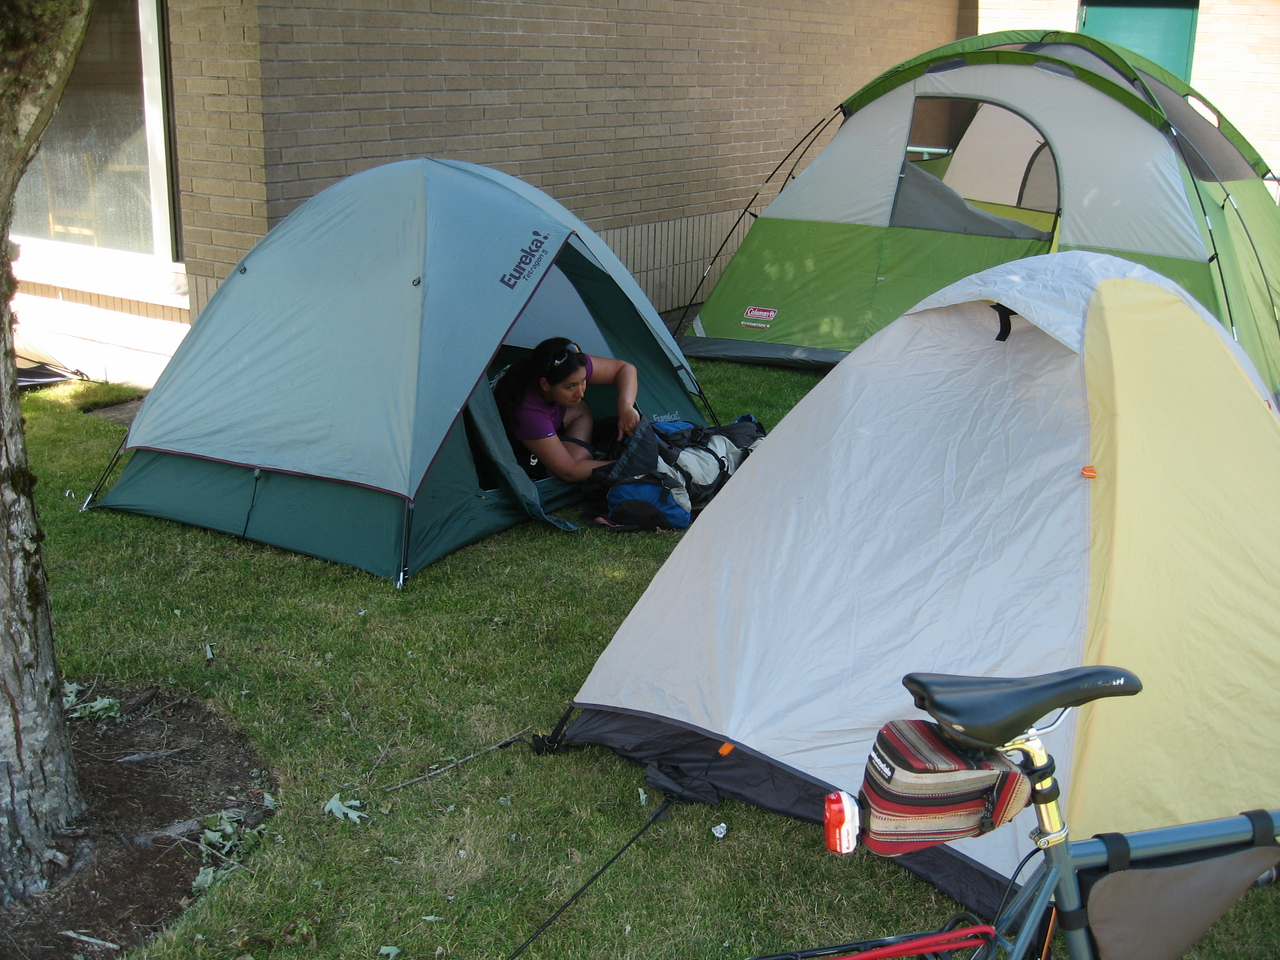 Camp in Centralia - Nancy getting set up in her tent.